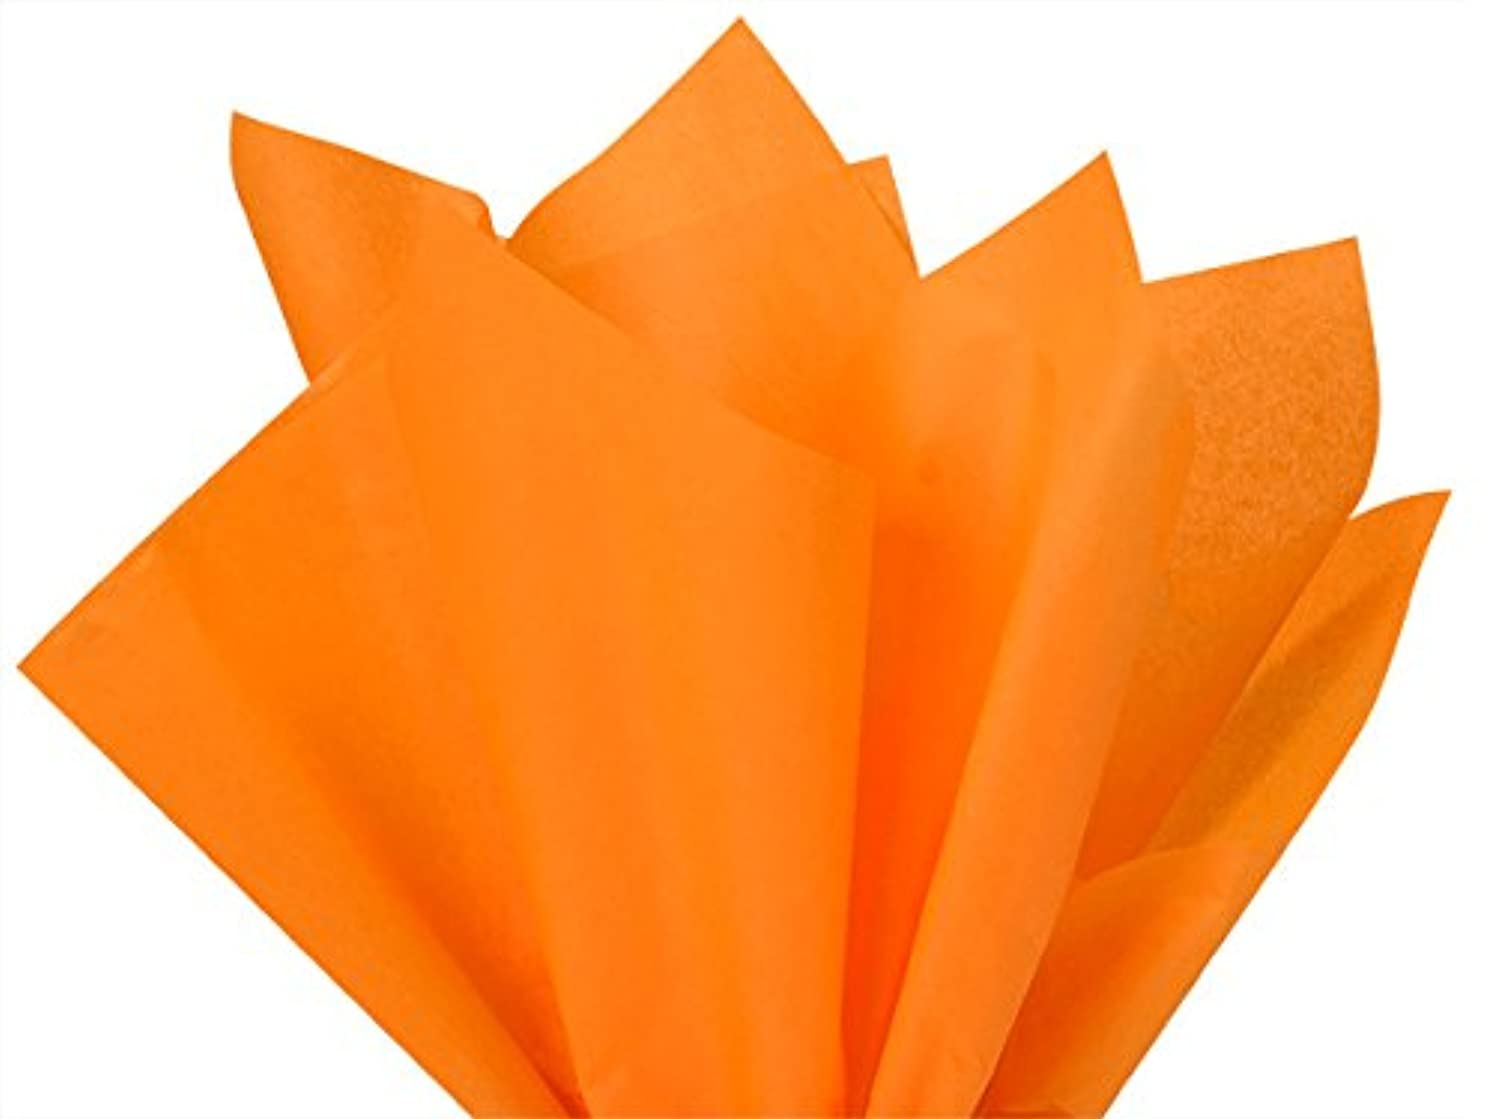 Brand New Tangerine Light Orange Bulk Tissue Paper 20 X 30-48 Sheets Premium Gift WRAP Tissue Paper A1 Bakery Supplies